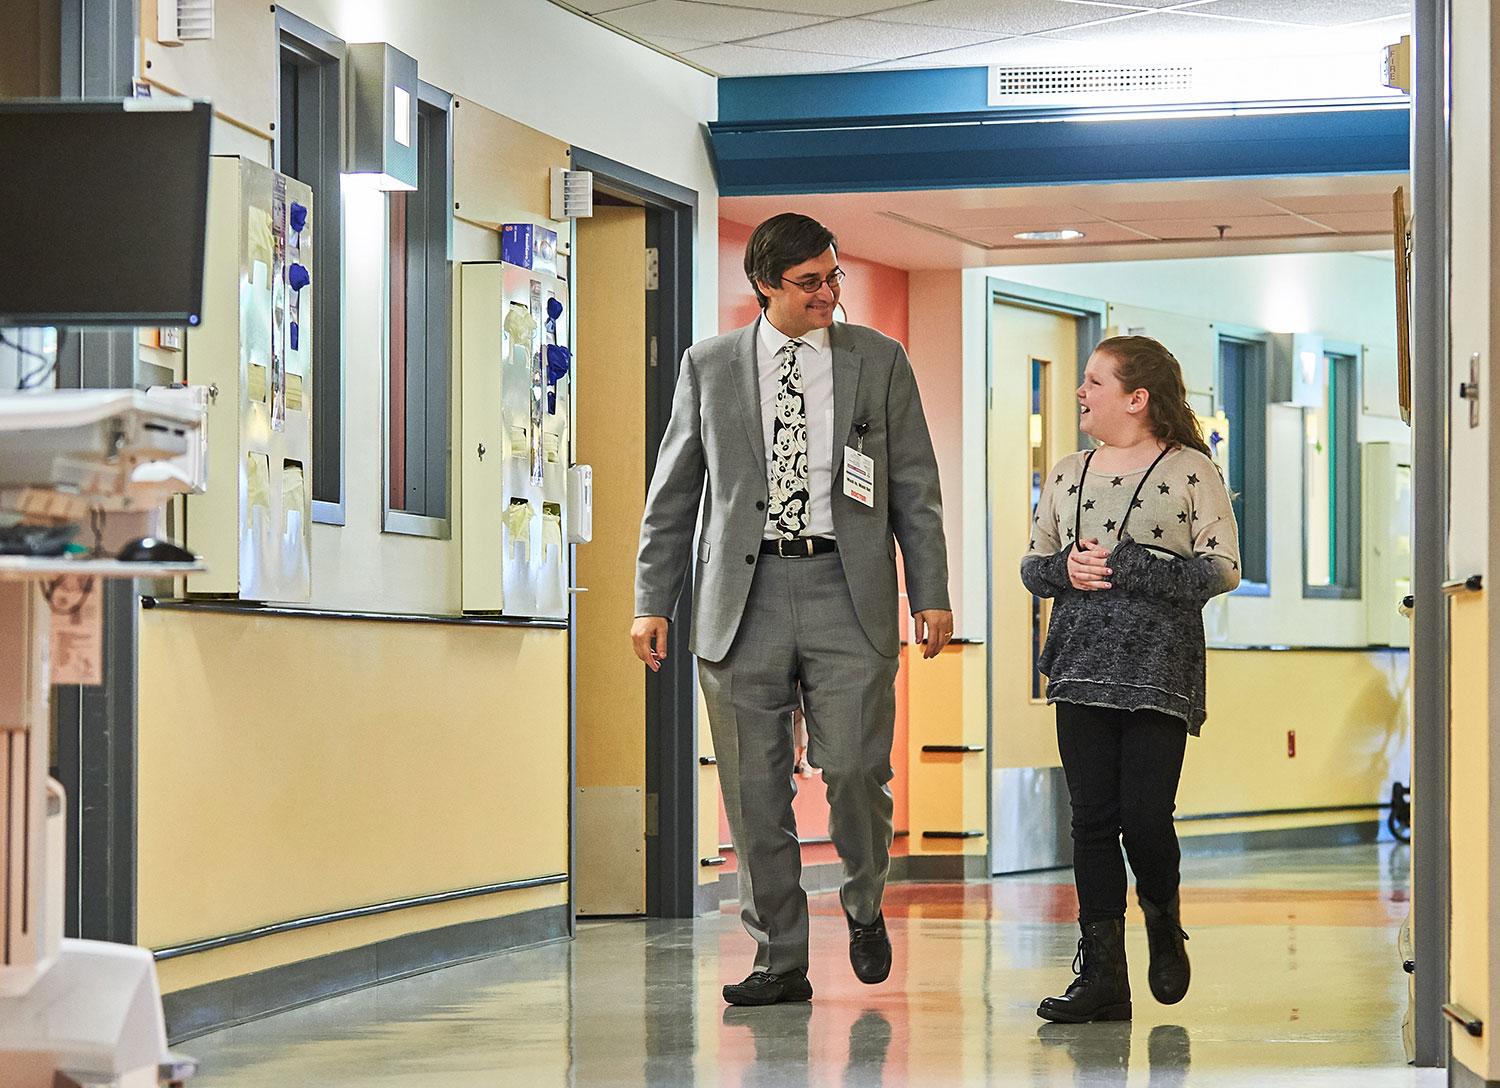 Dr. David Weinstein, head of the Glycogen Storage Disease Program at UConn Health and Connecticut Children's Medical Center, walks with Alyssa Temkin through the new clinic at Connecticut Children's.